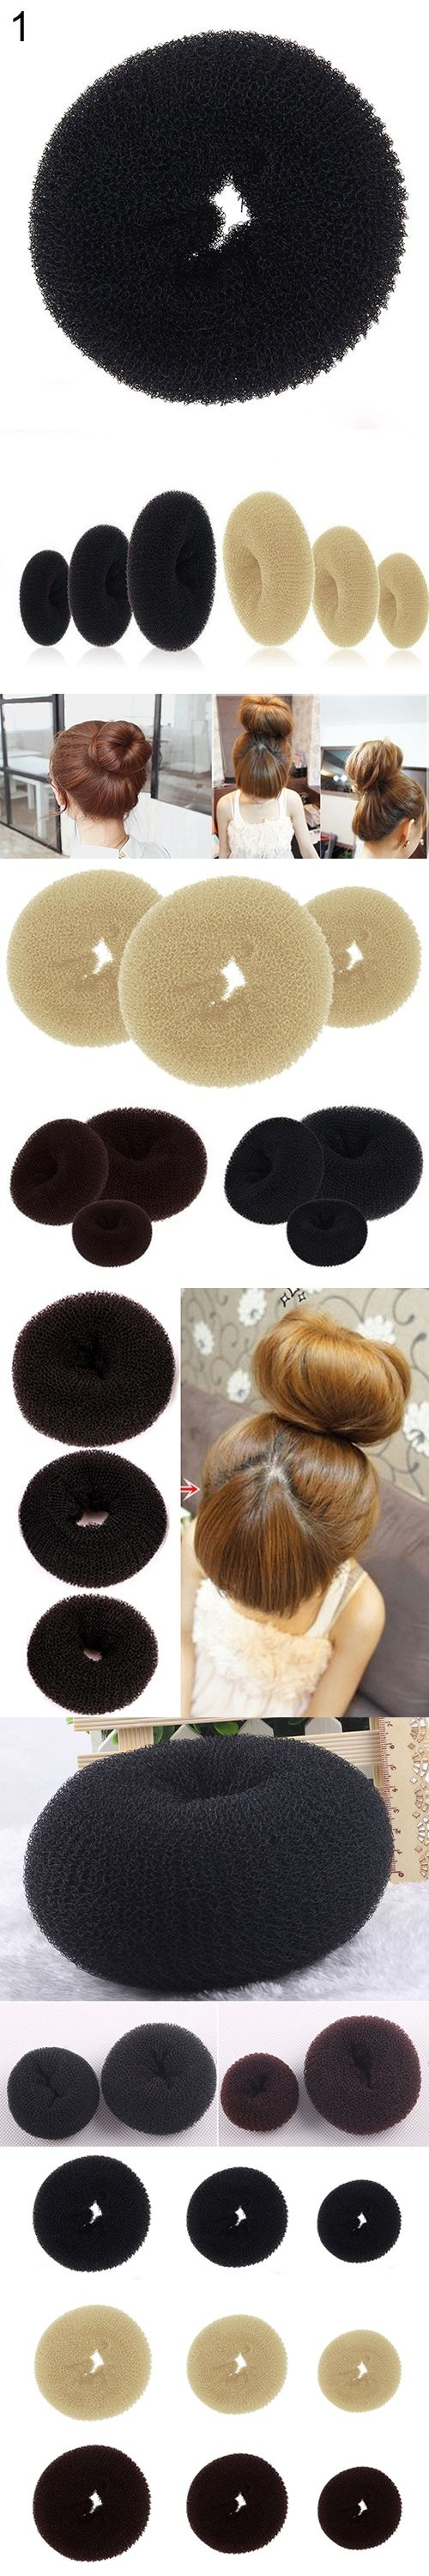 Hairstyler Stunning Hot Women Magic Blonde Donut Hair Ring Bun Former Shaper Hair Styler